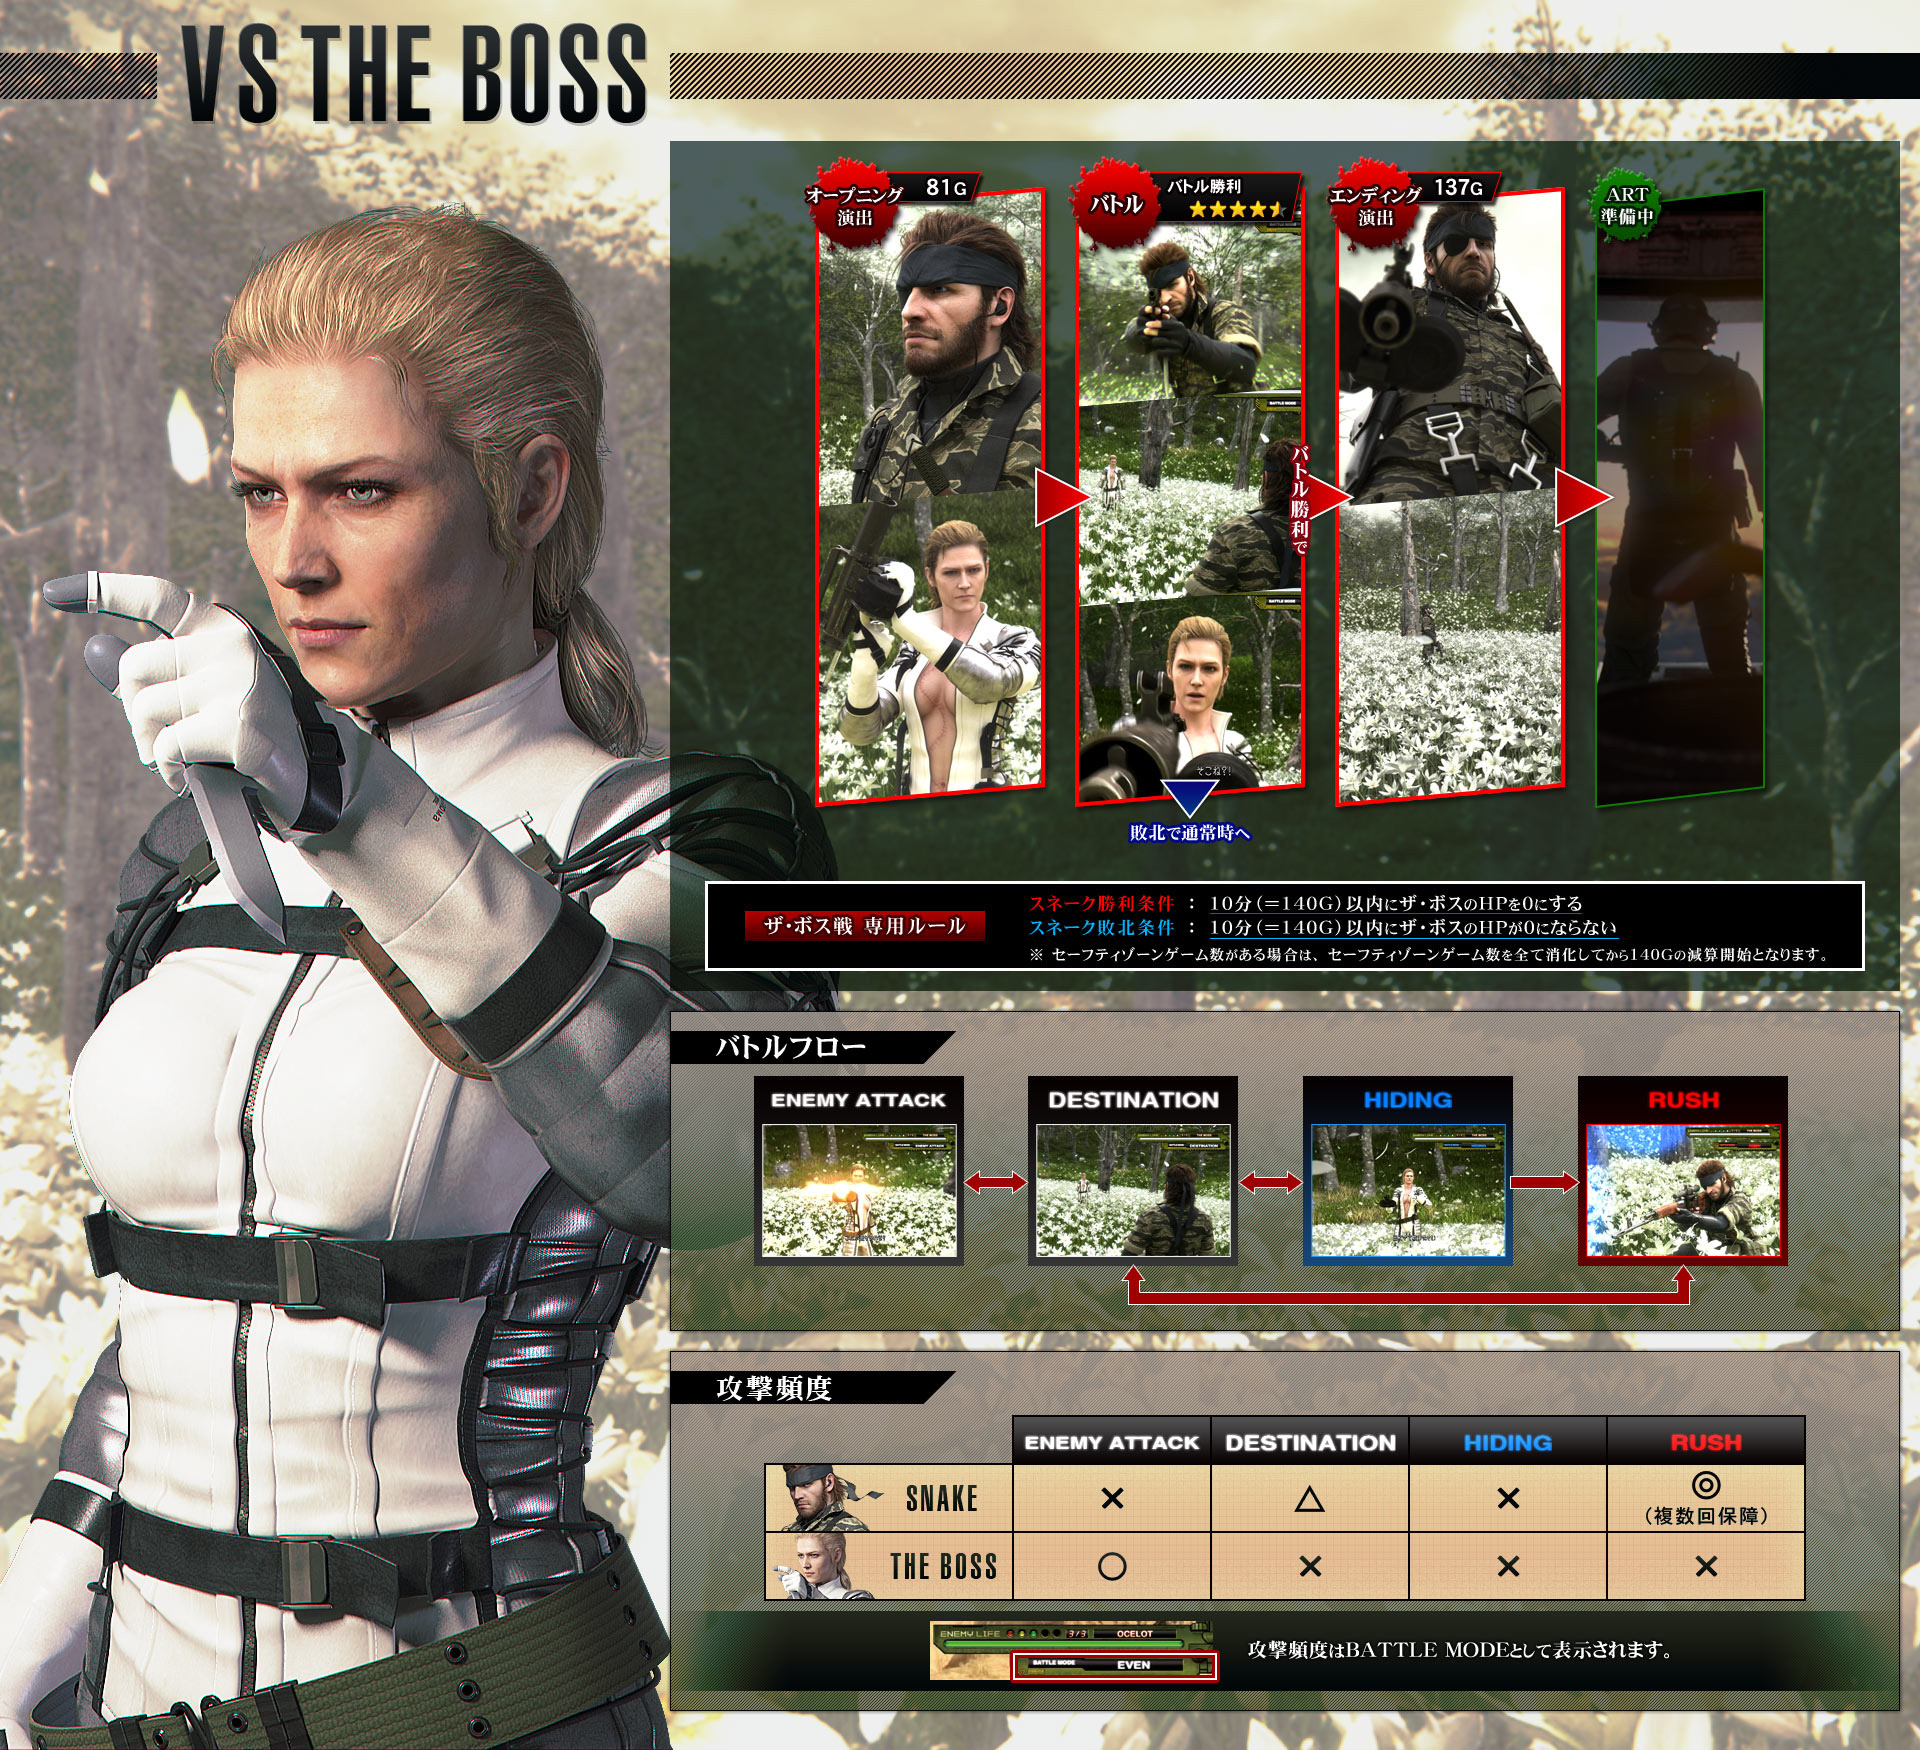 metal-gear-solid-snake-eater-pachislot-the-boss-battle